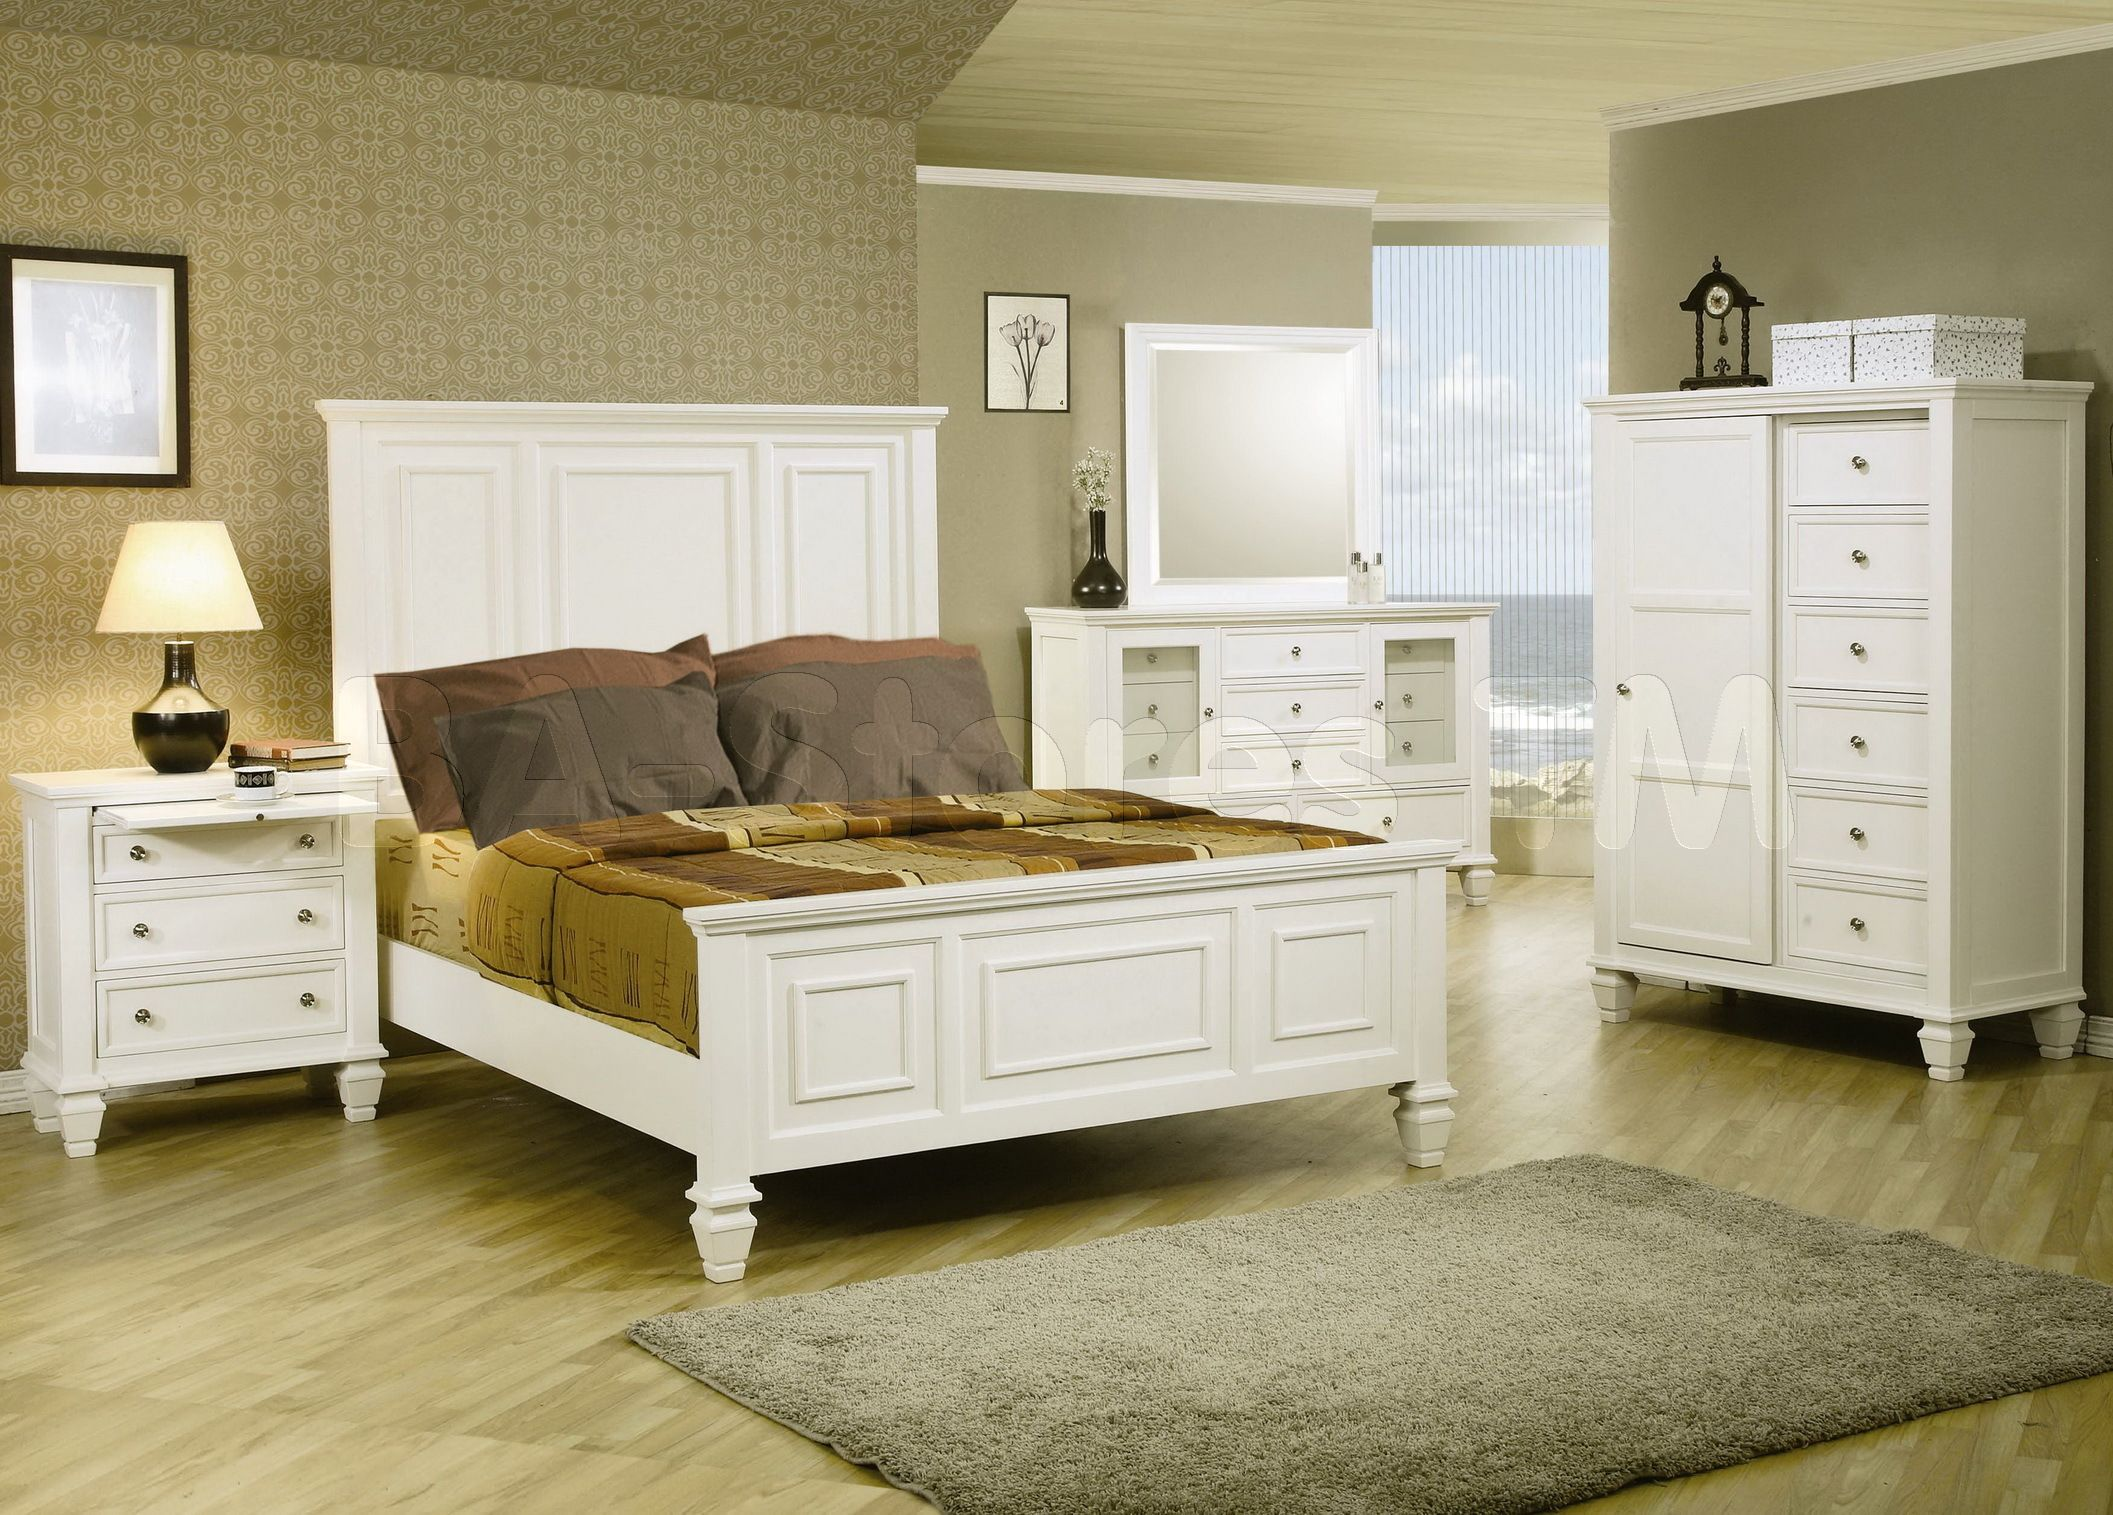 1000  ideas about White Bedroom Furniture Sets on Pinterest   White bedroom furniture  Bedroom furniture sets and Glass bedroom furniture